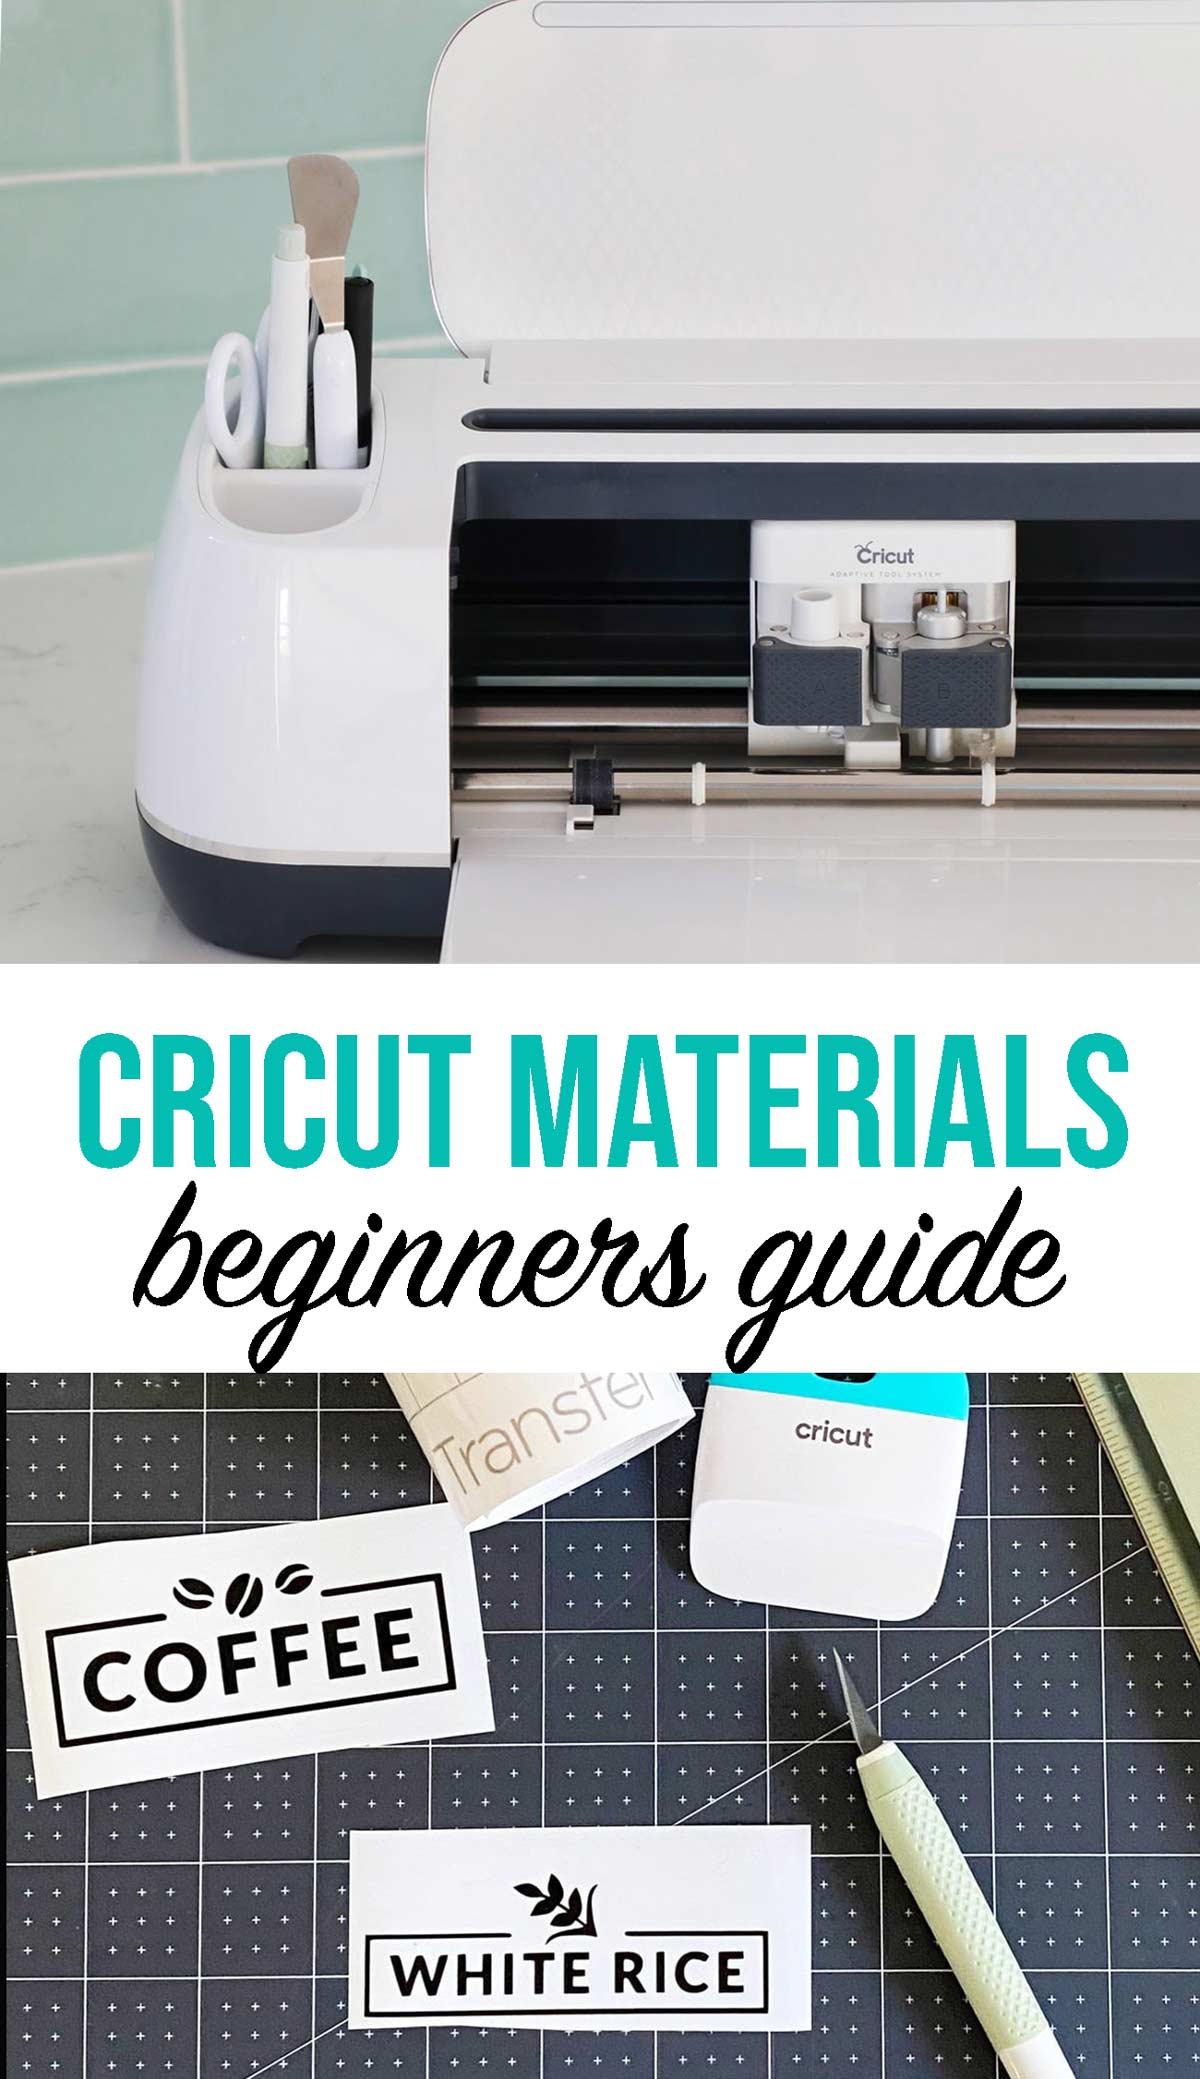 Cricut Materials Guide